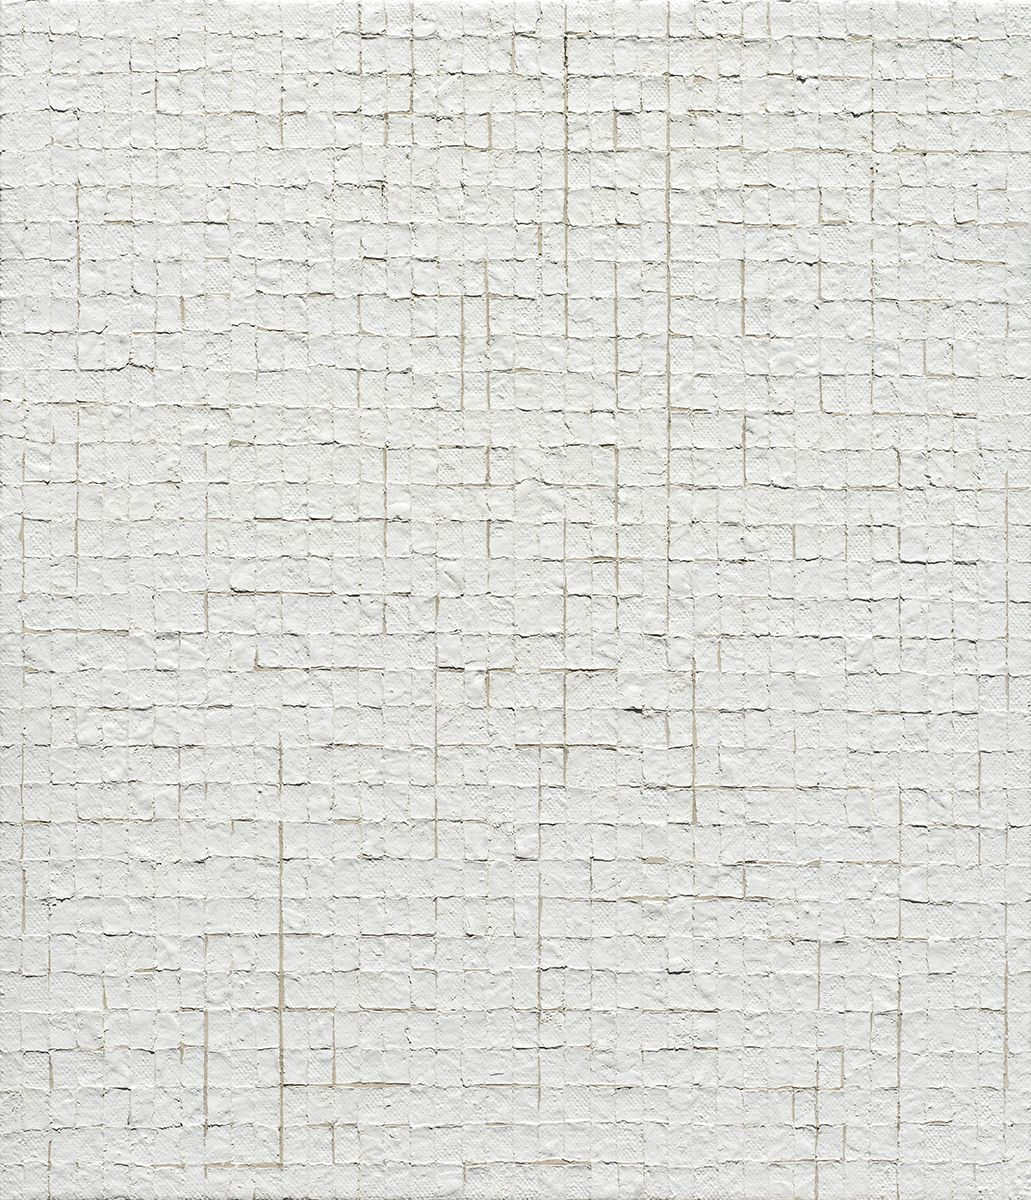 Chung Sang-Hwa Untitled 2015-04-10, 2015 Acrylic and kaolin on canvas 20 7/8 x 17 7/8 inches (53 x 45.5 cm)